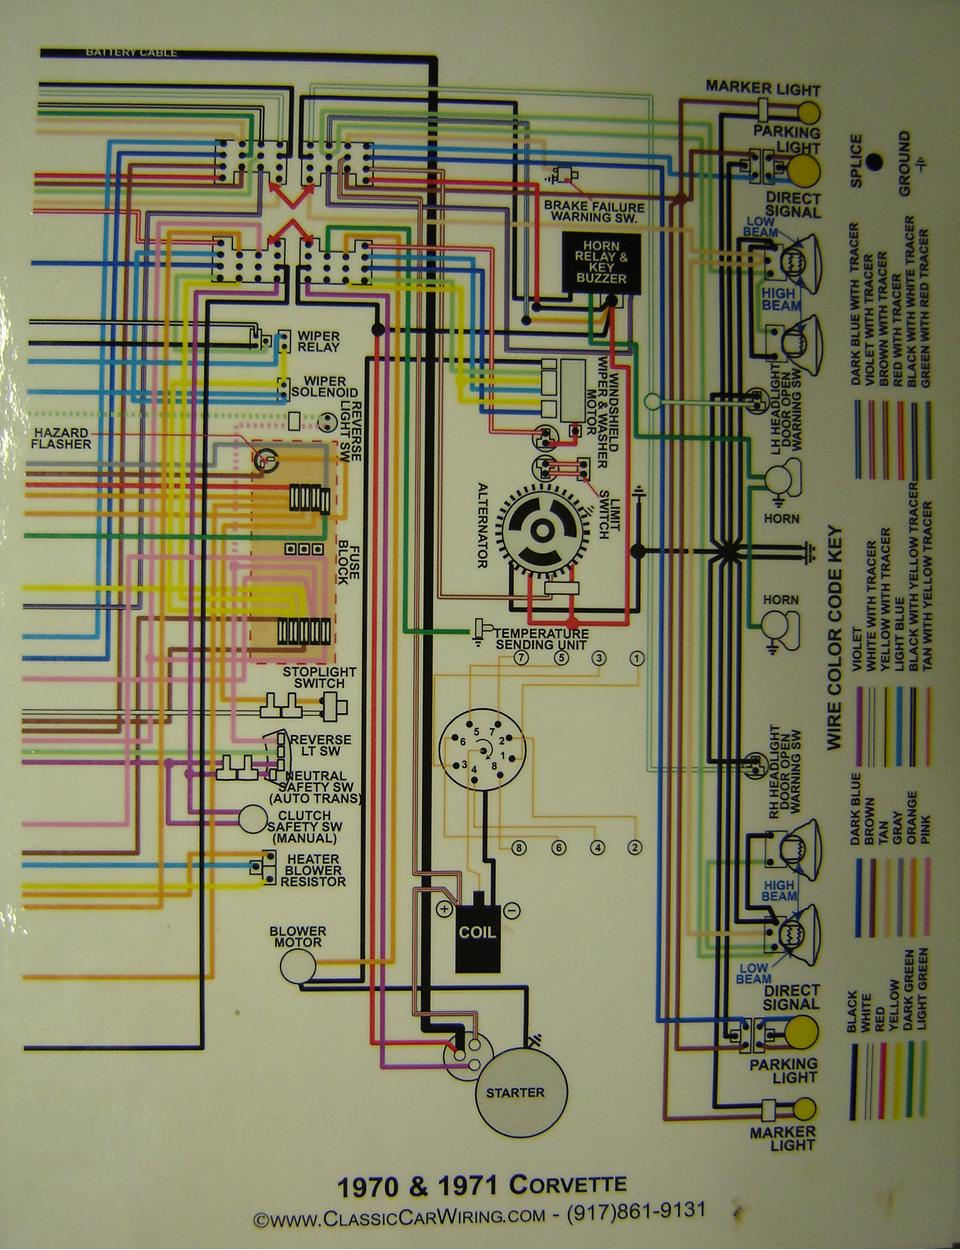 1970 71 corvette color wiring diagram B corvette wiring diagram corvette parts diagram \u2022 wiring diagrams 1969 corvette wiring harness at honlapkeszites.co